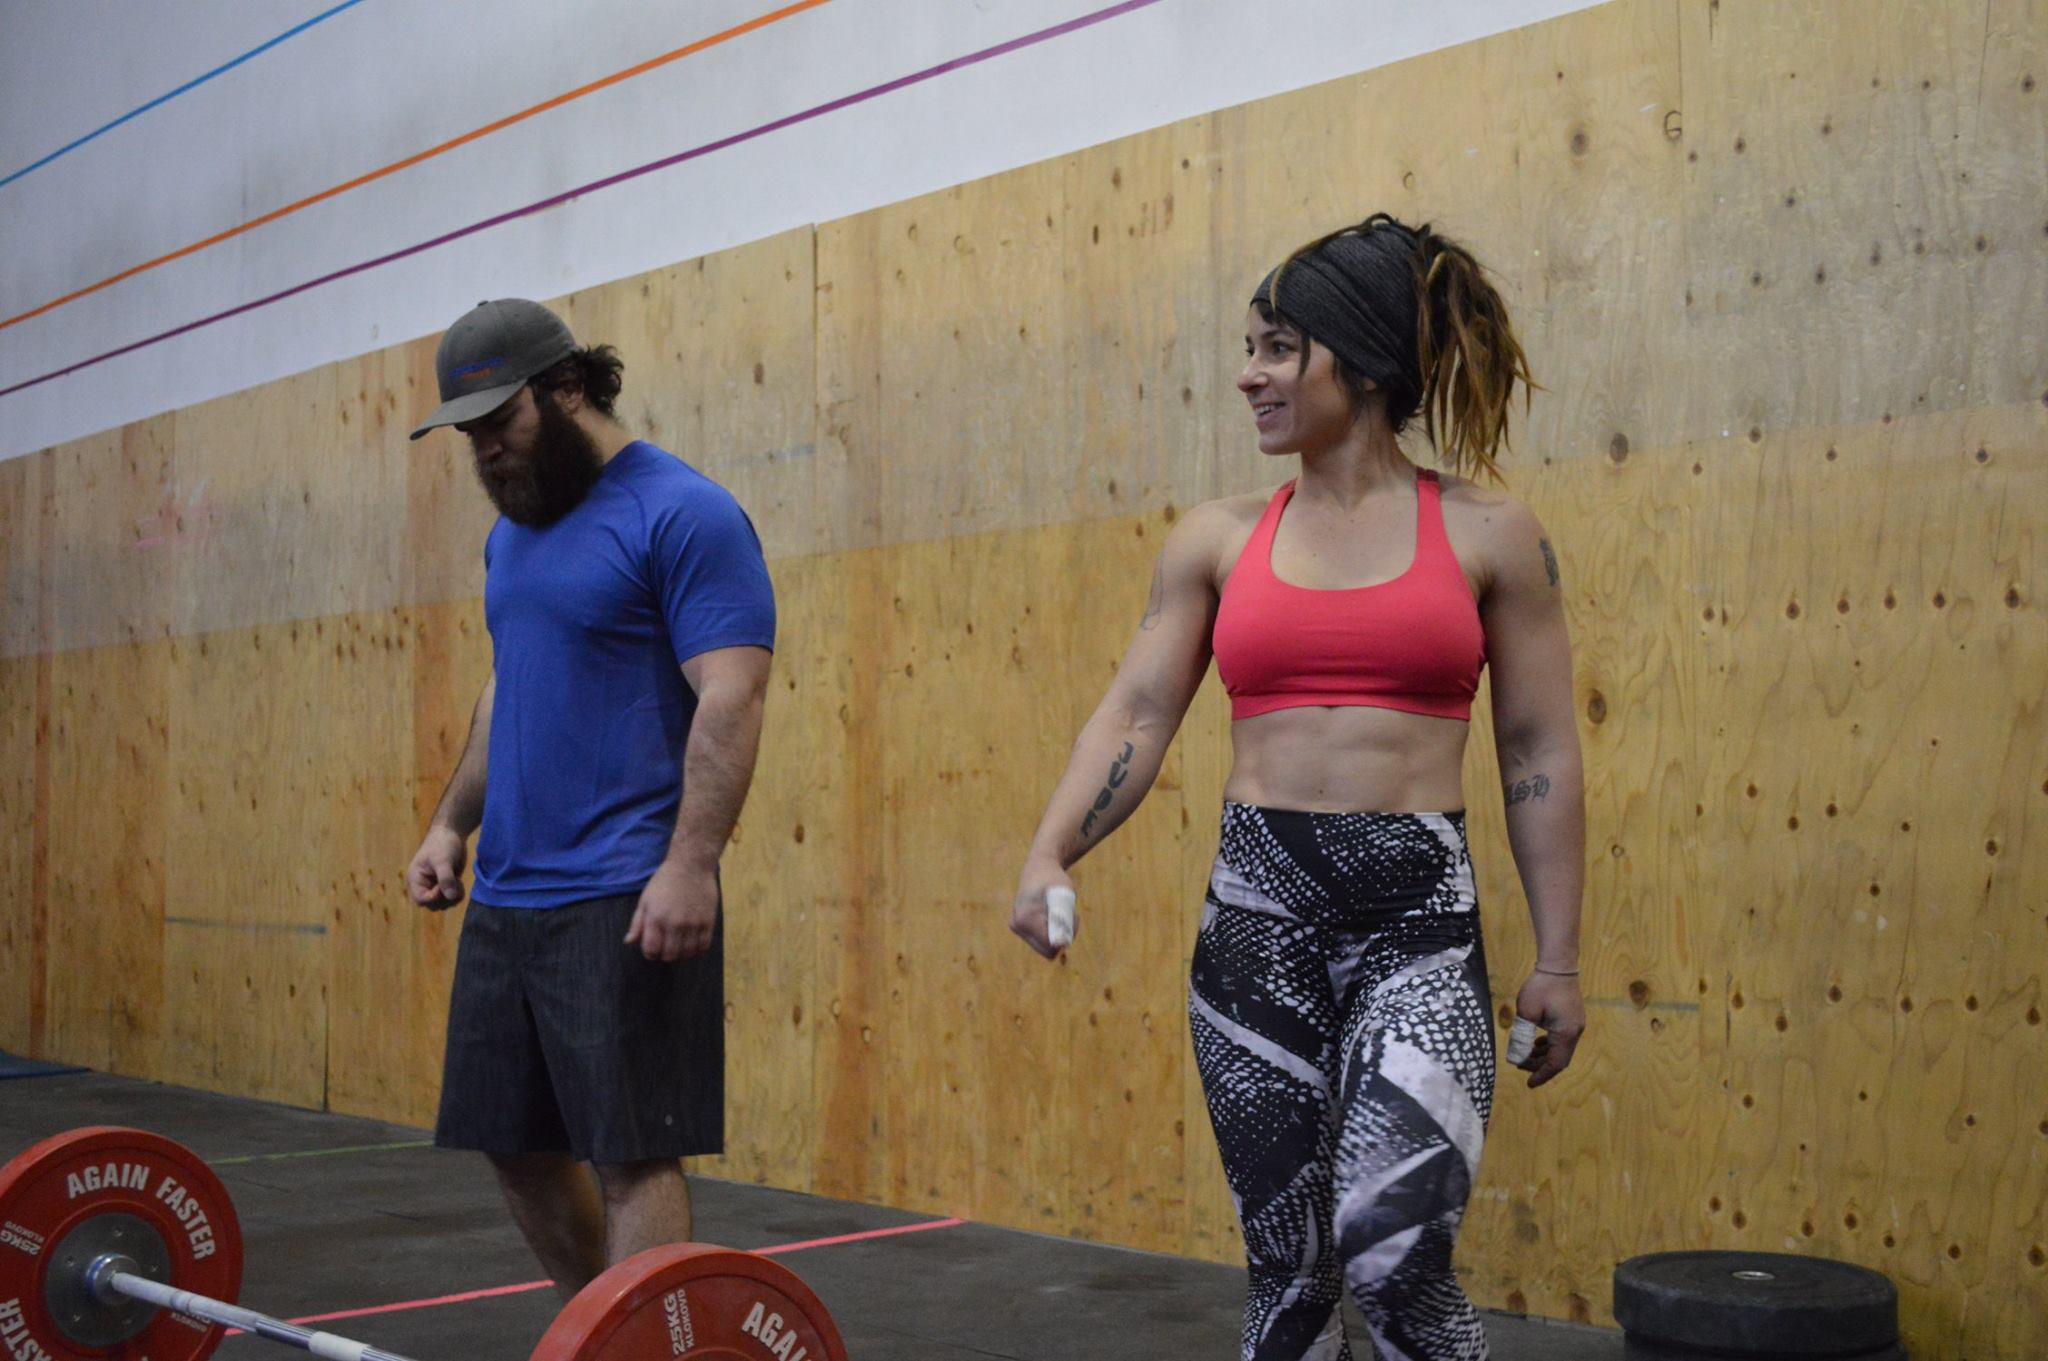 Jared with his girlfriend Tamara Gray. The couple owns and operates CrossFit Pandora's Box in Colorado Springs, CO. the host for the wild/STRONG Open Tour Week 4.